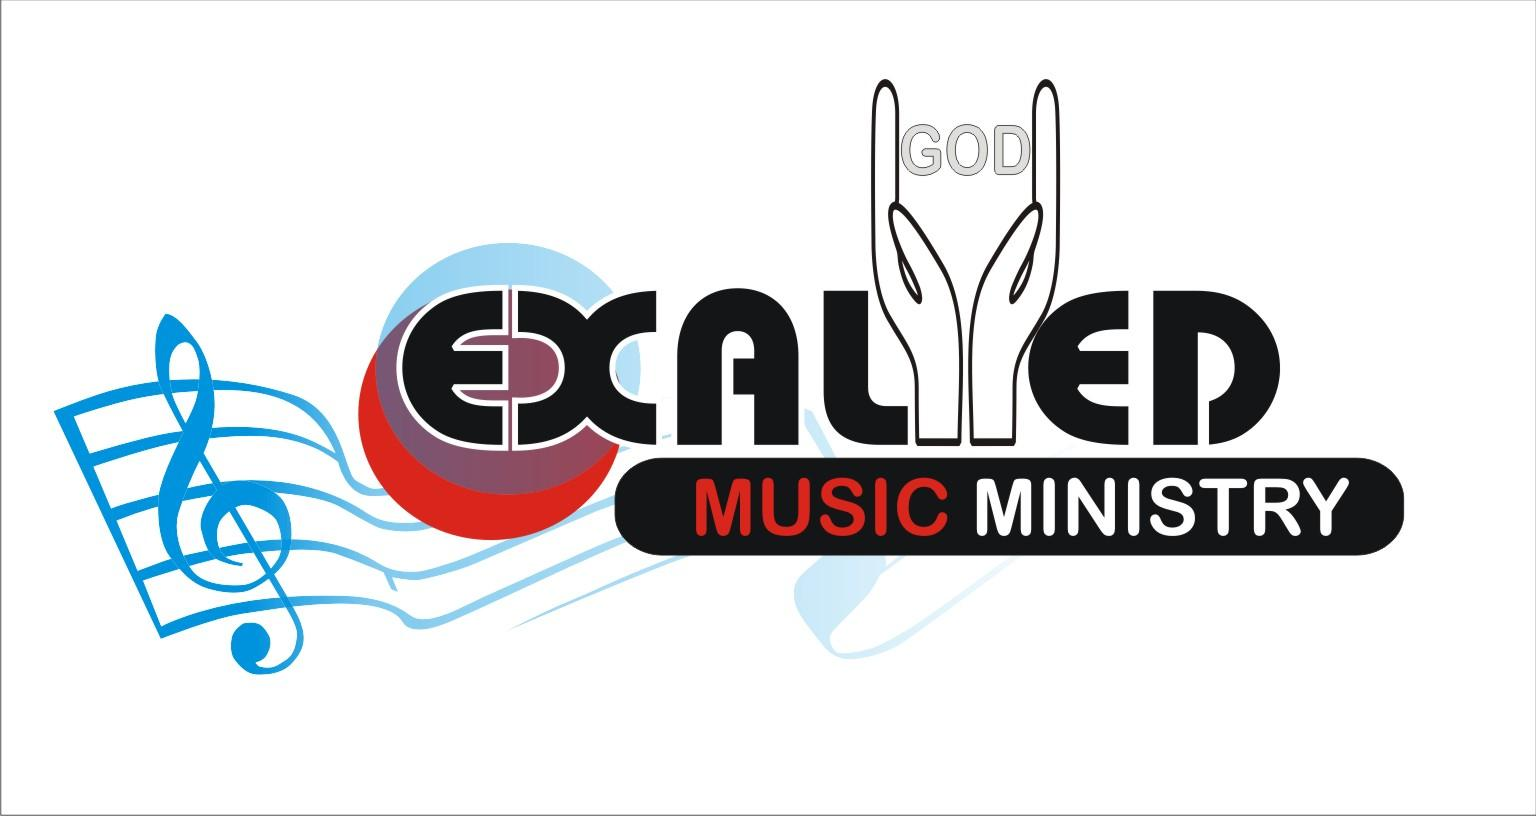 Exalted Music Ministry Music In Africa